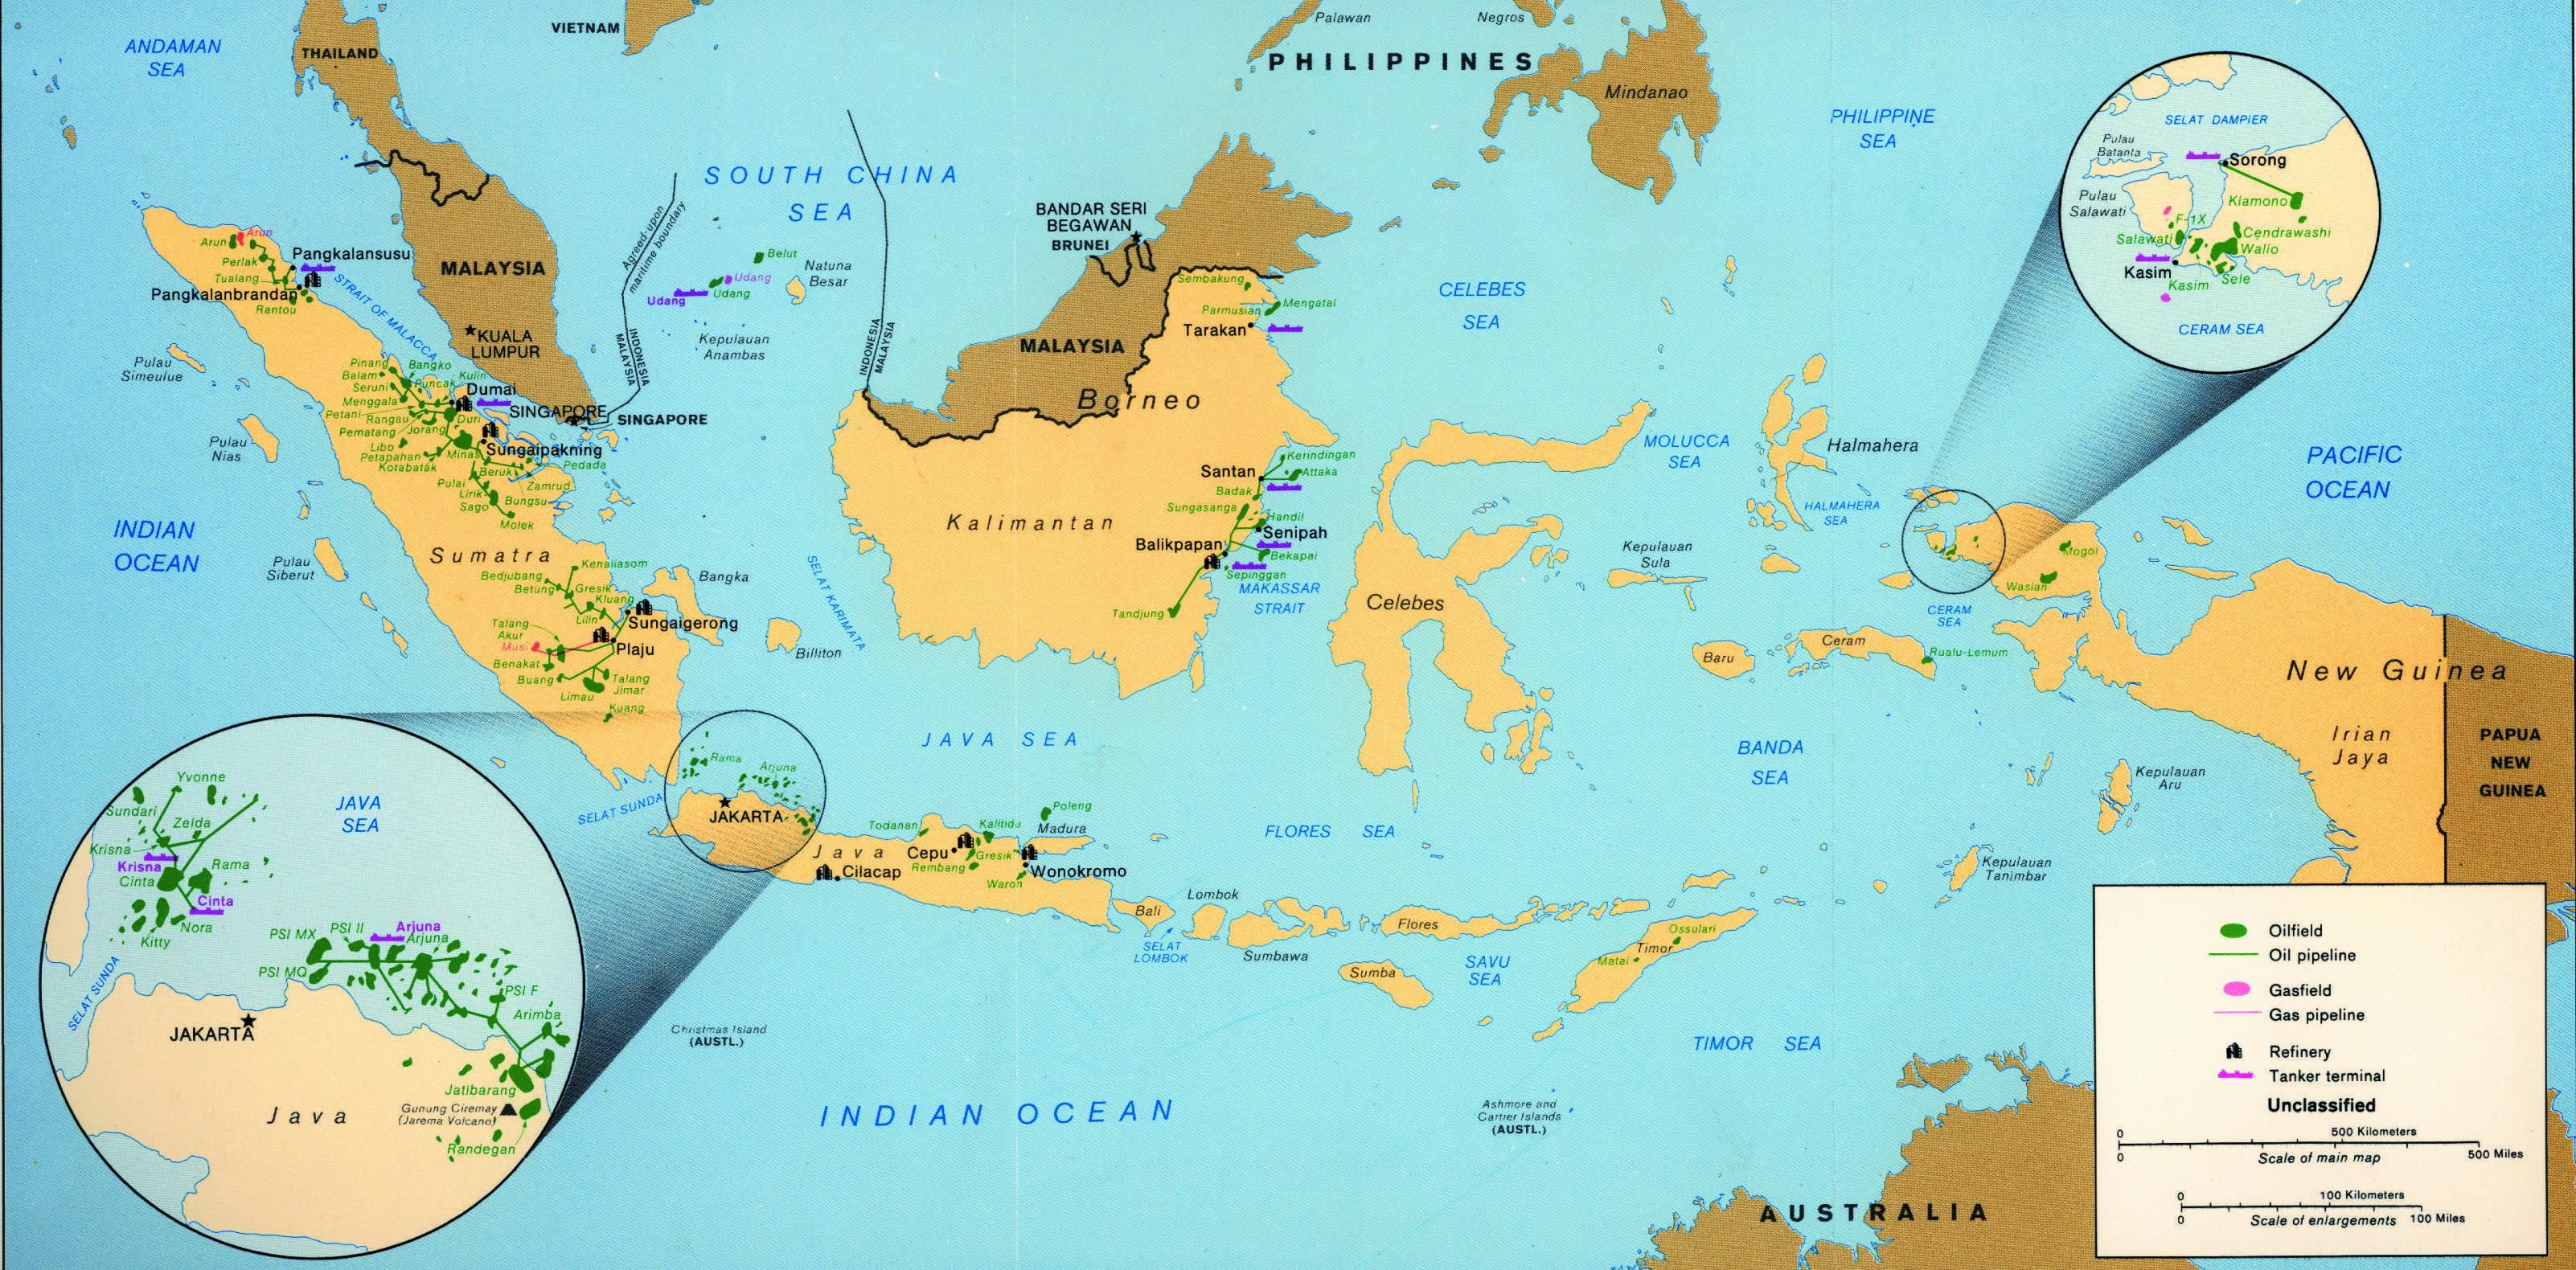 Indonesia oil and gas